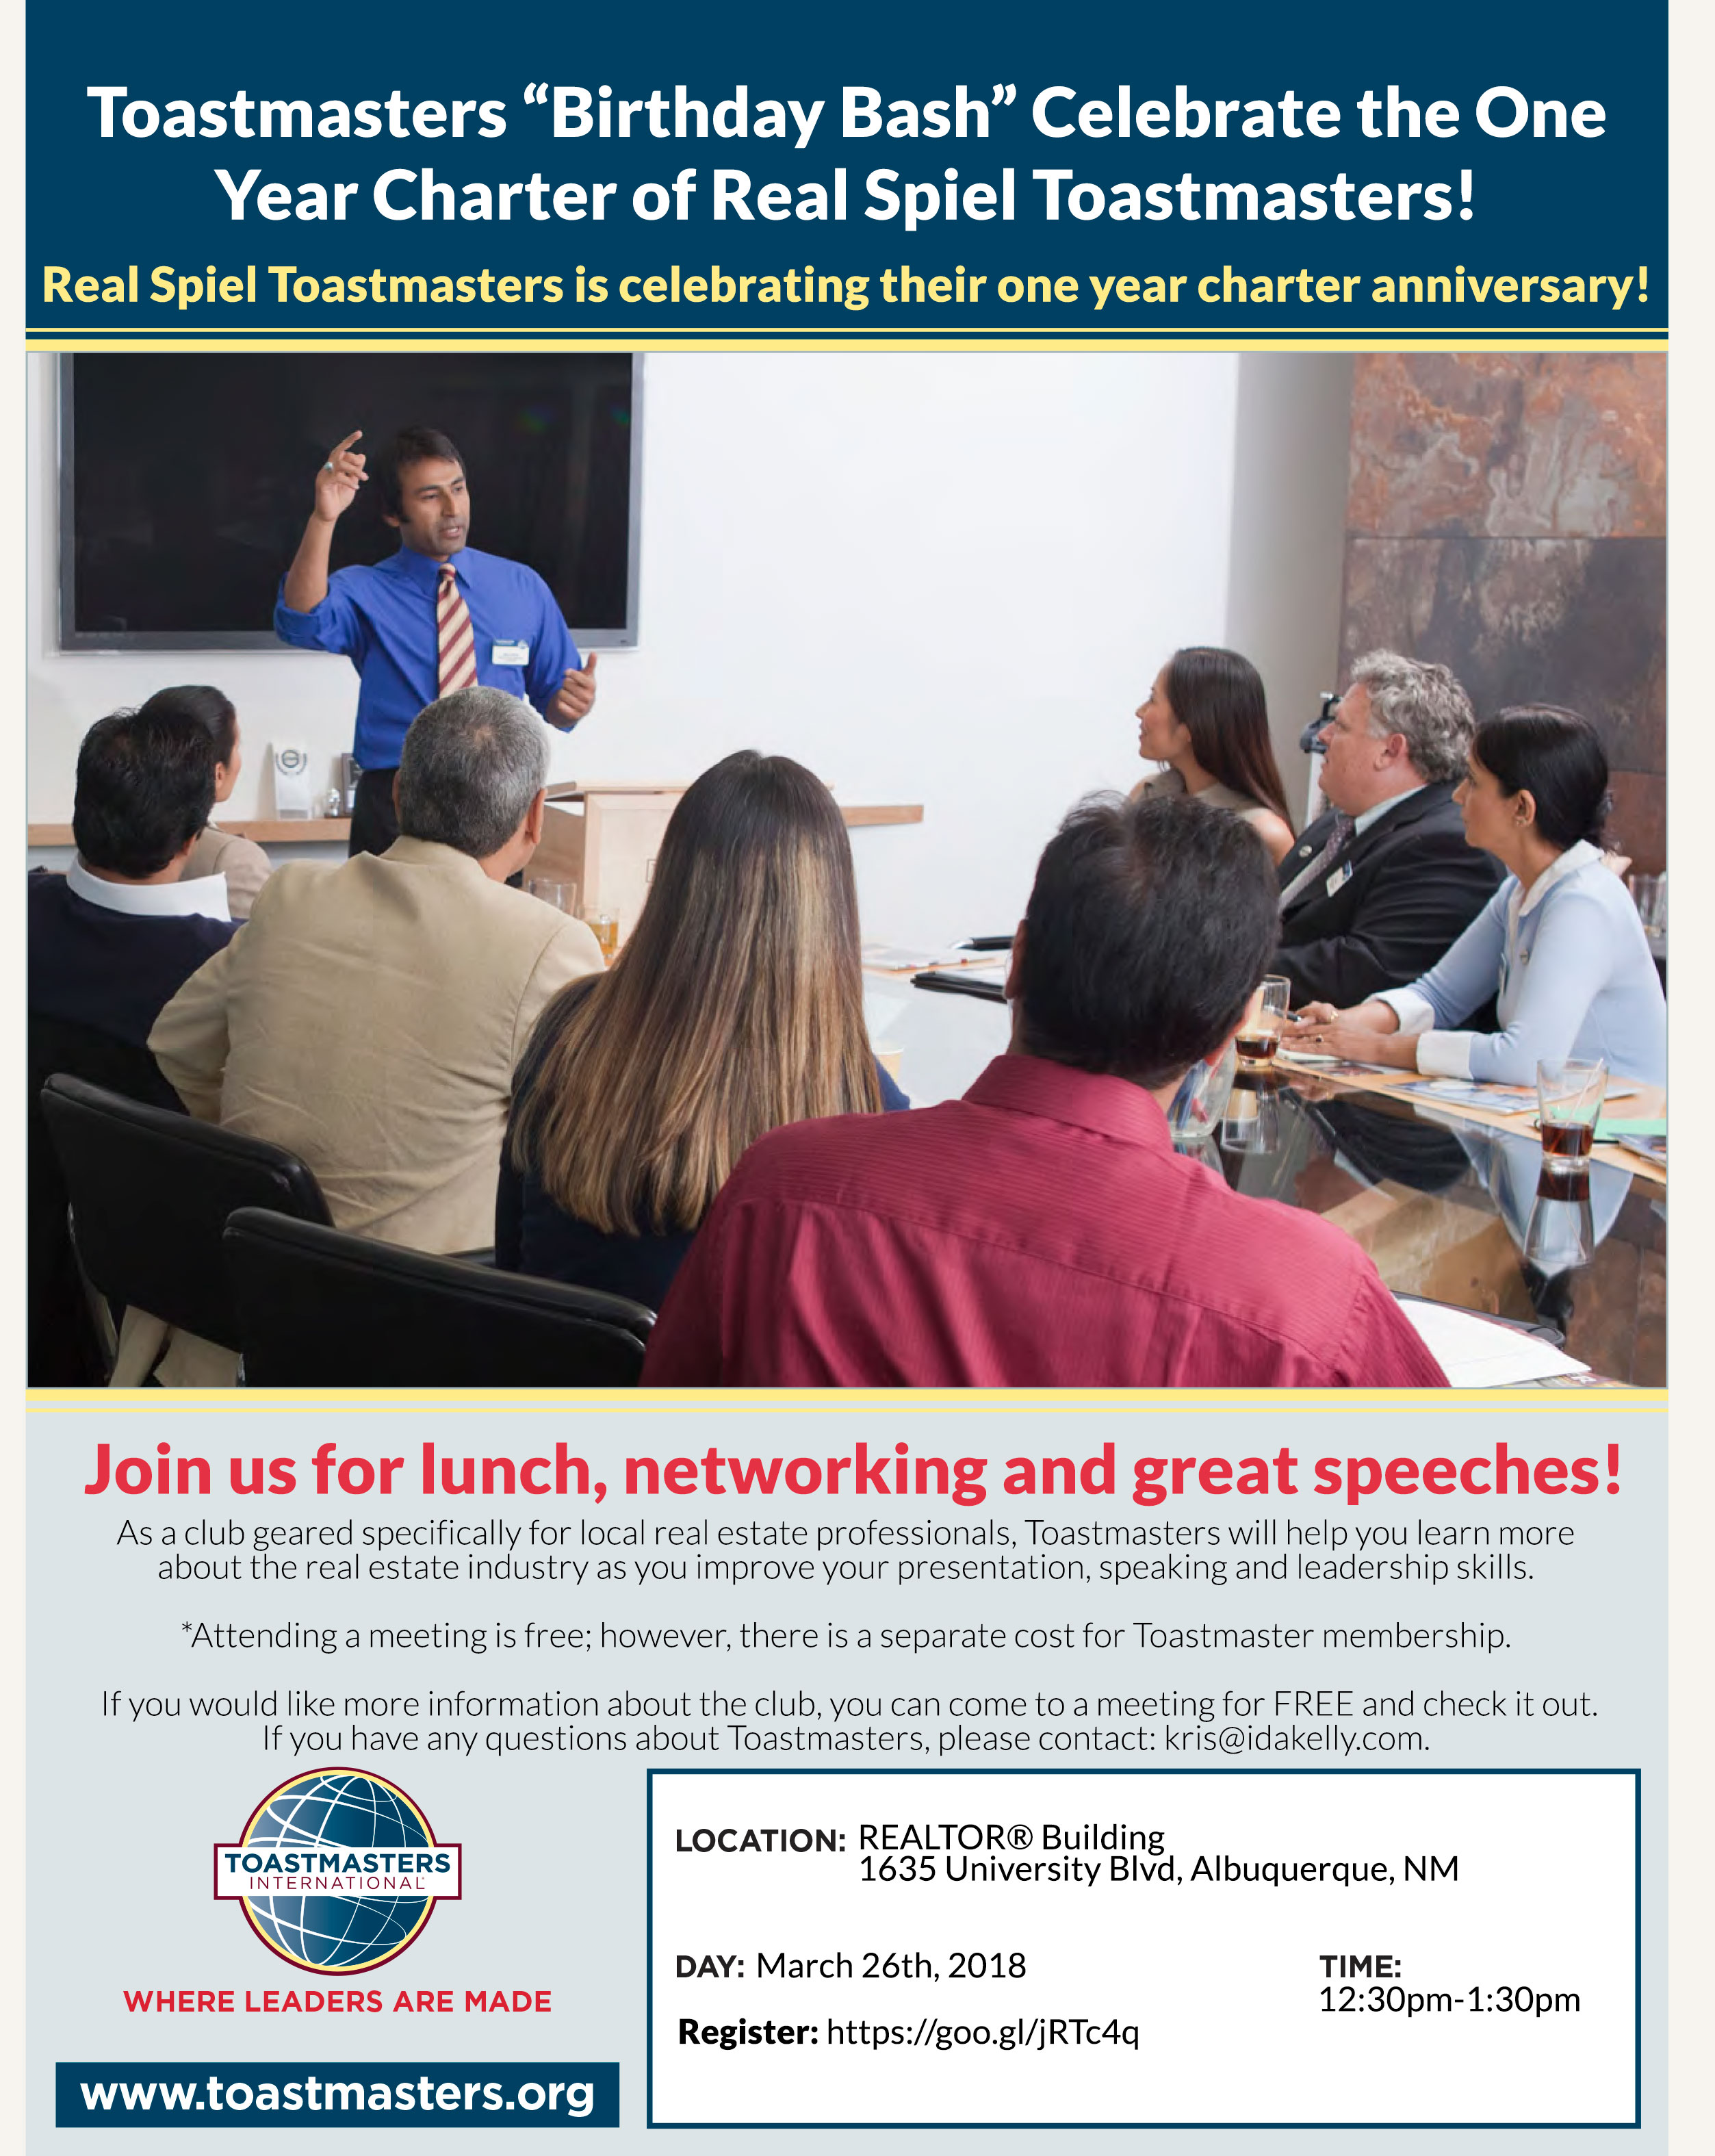 You Are Invited to the Toastmasters 1-year Birthday Bash!